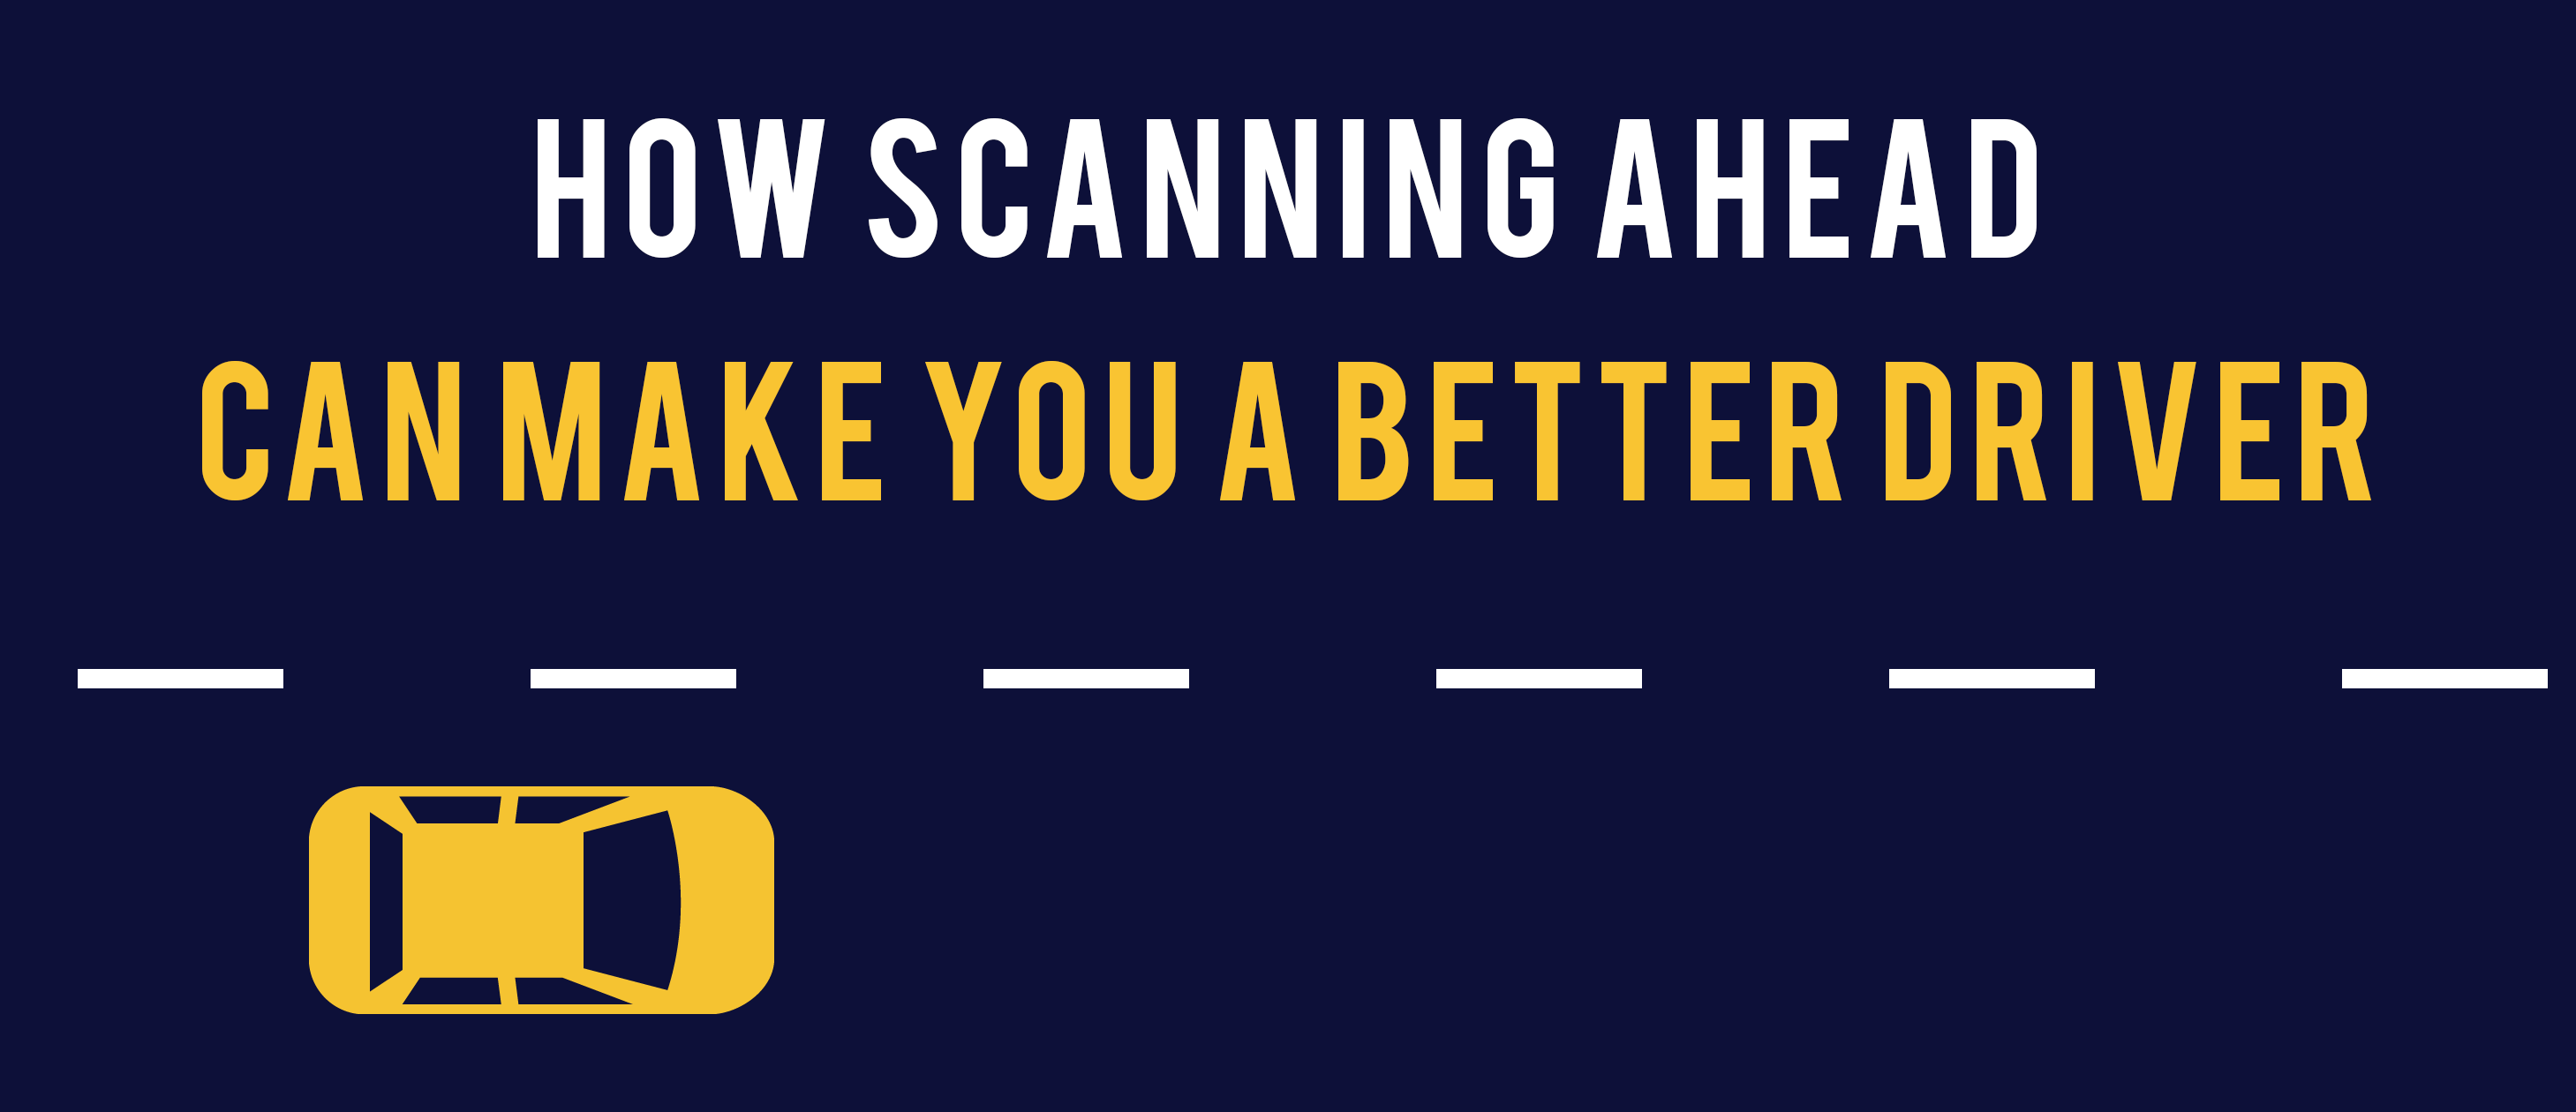 How scanning ahead can make you a better driver